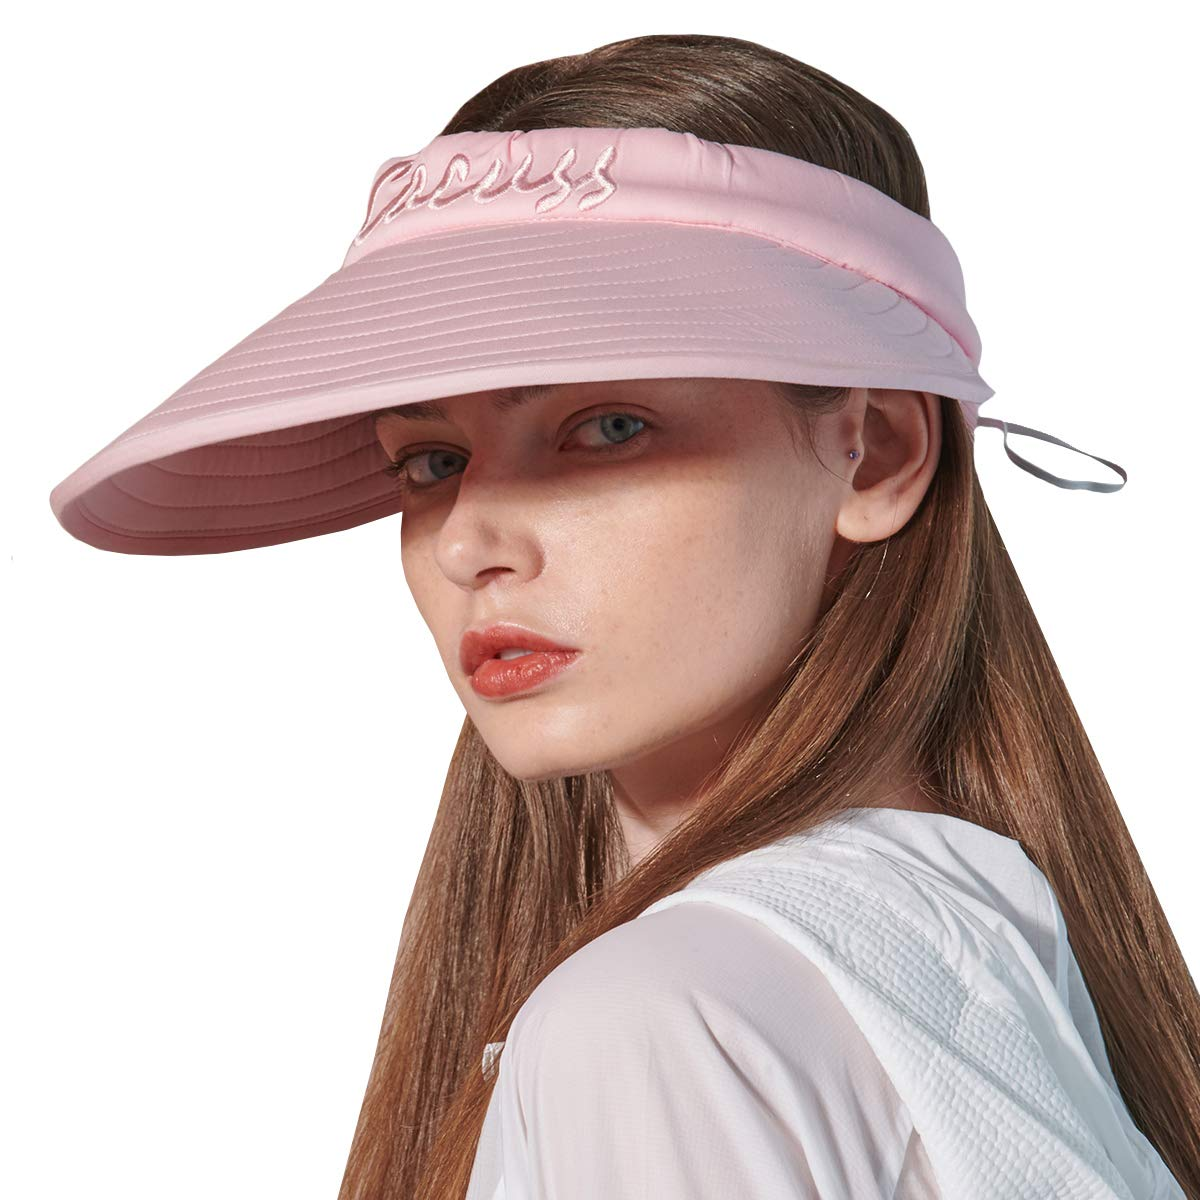 CACUSS Women's Summer Sun Hat Large Brim Visor Adjustable Magic Tape Packable UPF 50+(Pink) by CACUSS (Image #1)